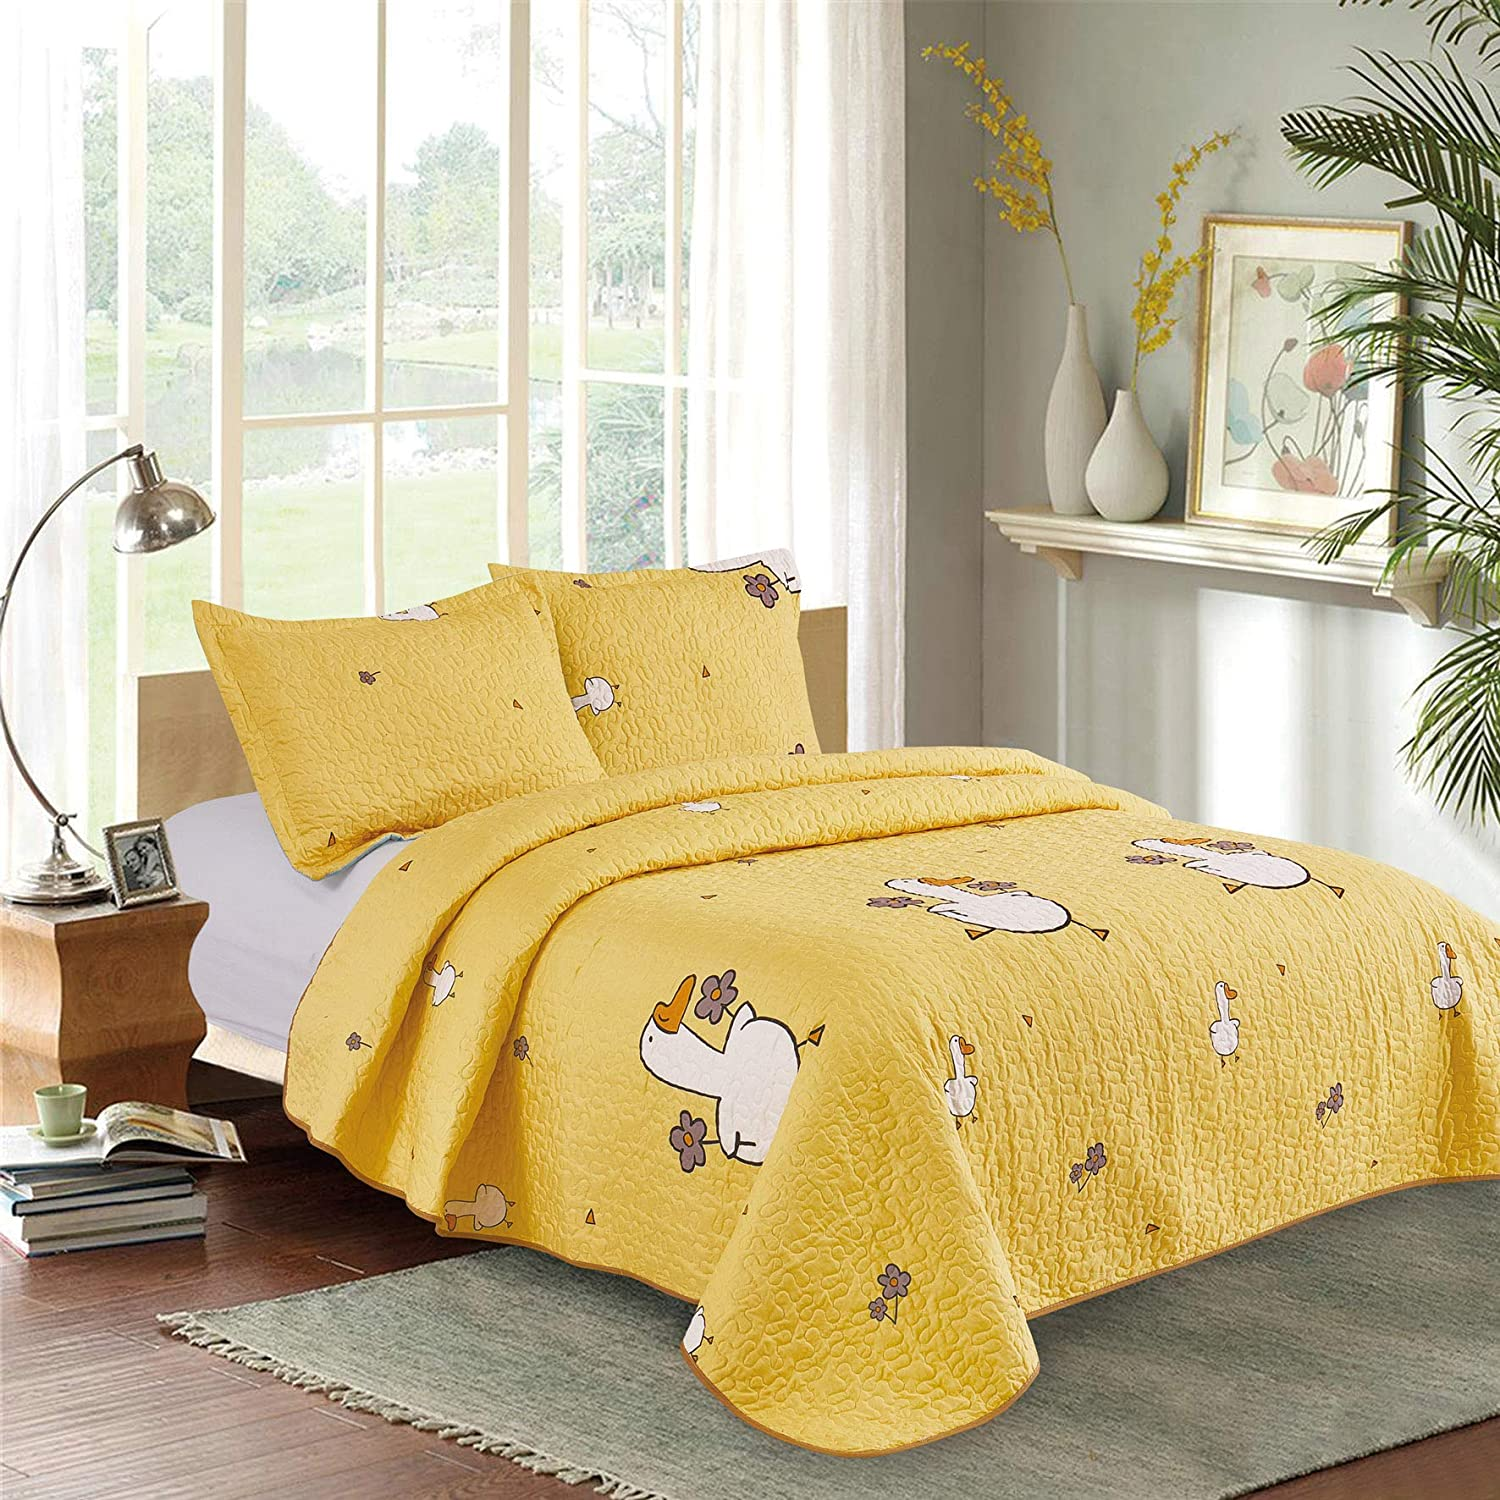 NEAT HOME All Season Bed Cover Set-2 Piec Pattern Be Oklahoma City Mall super welcome Duck Quilt